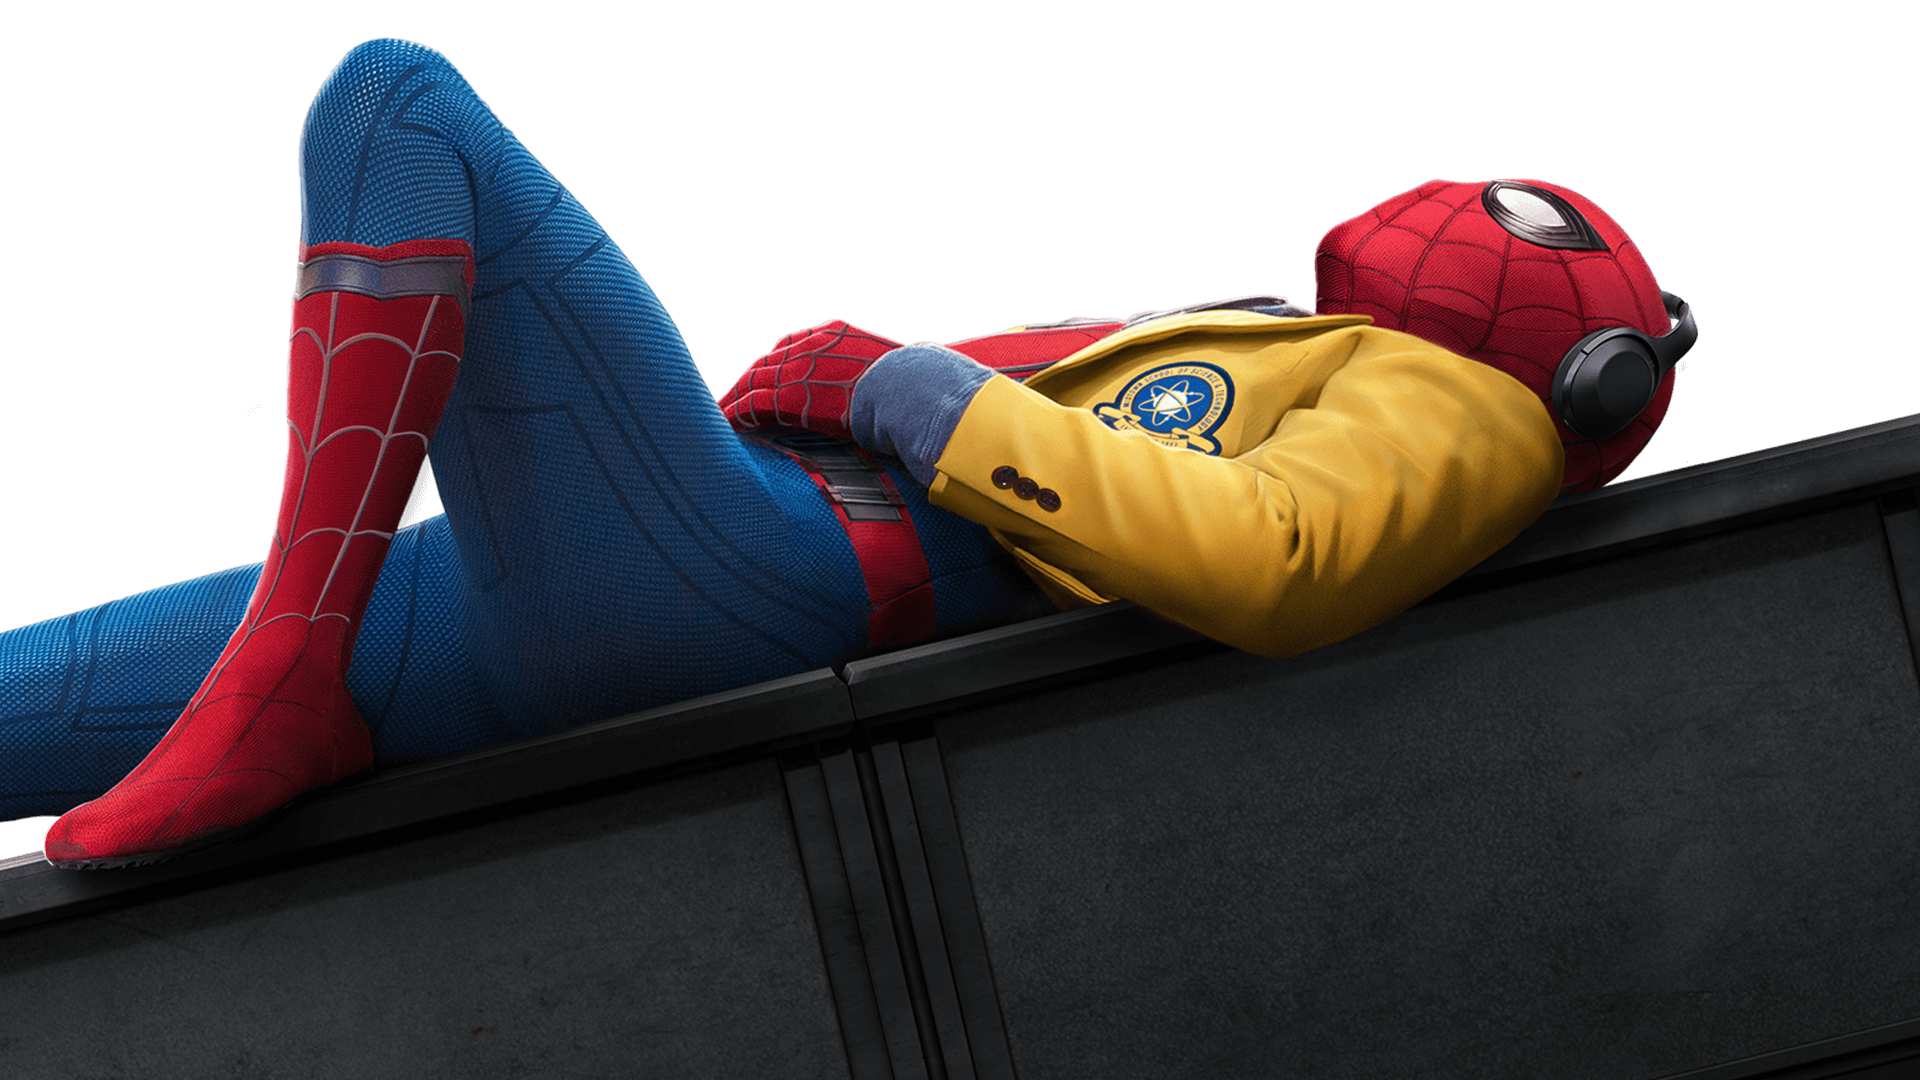 Bitten by Marvel Studios, Hero Gets Younger, Stronger and Way More Fun in 'Spider-Man: Homecoming'